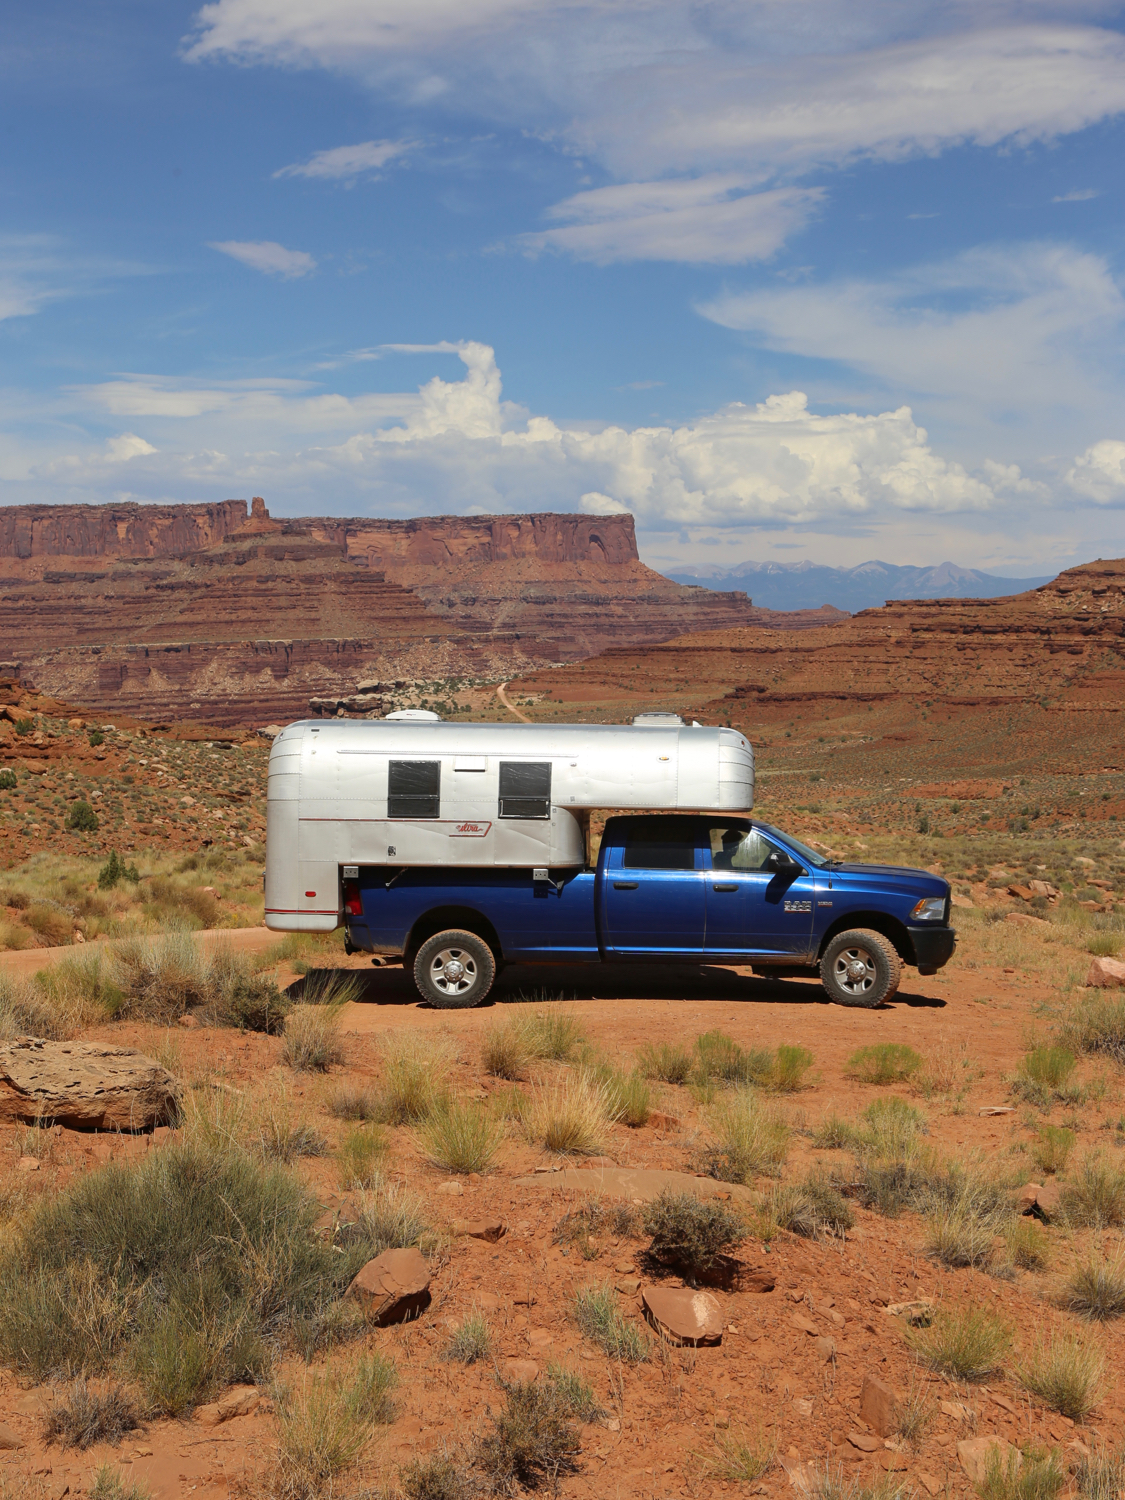 Aluminum truck camper on a blue truck on a dirt road in the middle of Canyonlands National Park